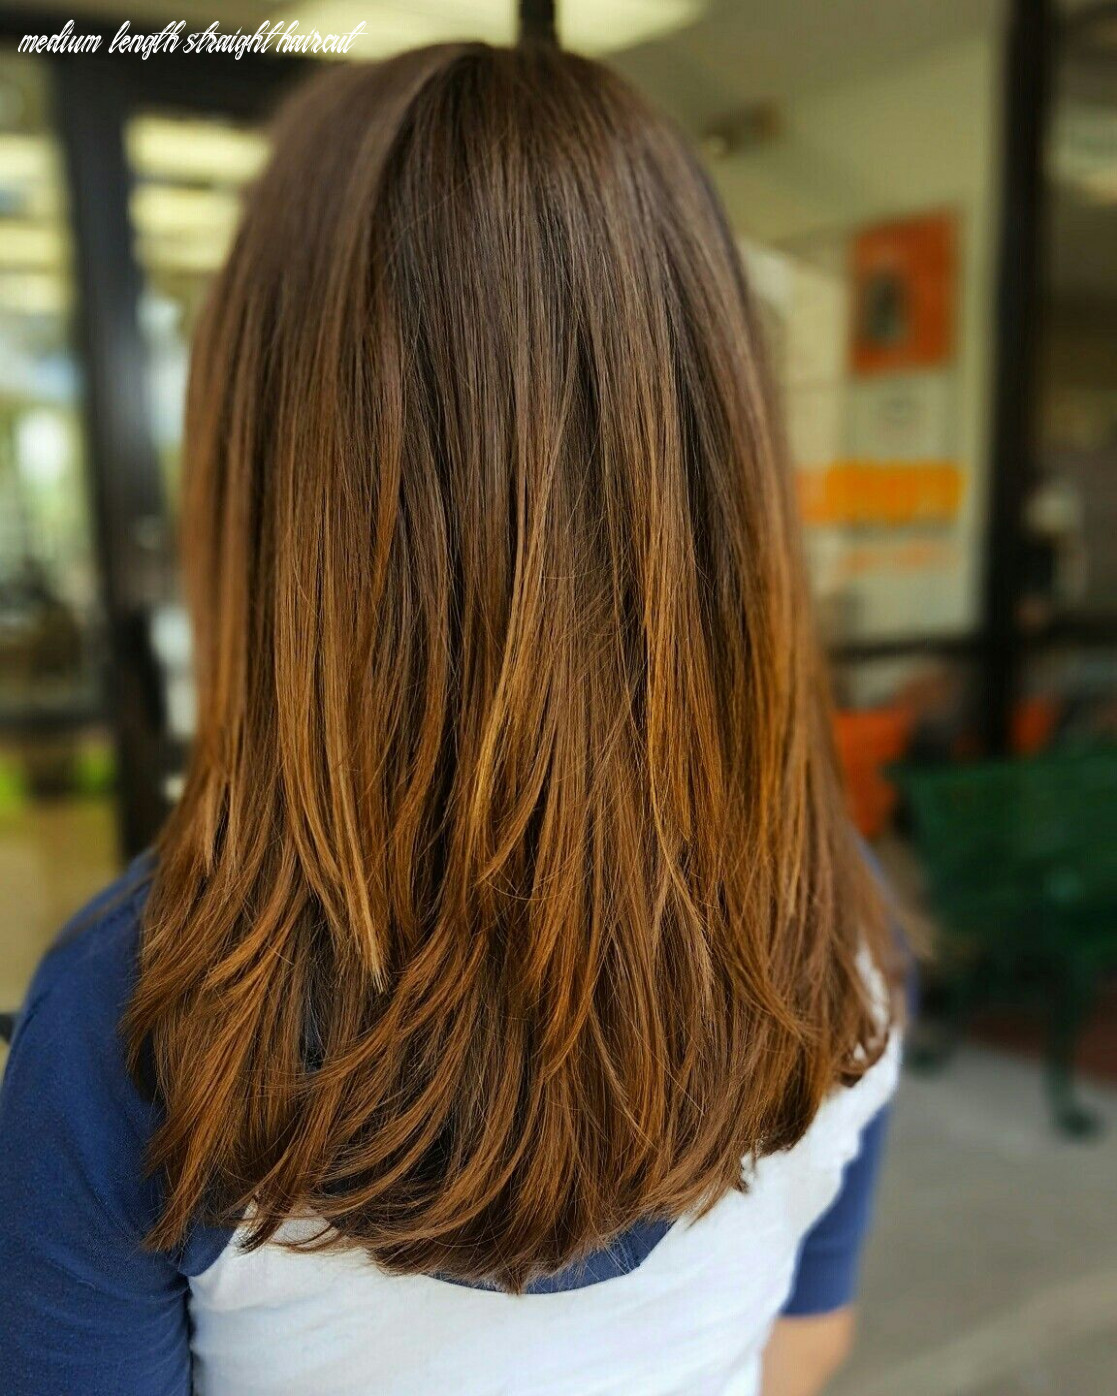 Layered haircut Layers Choppy layers (With images) | Hair cuttery ...